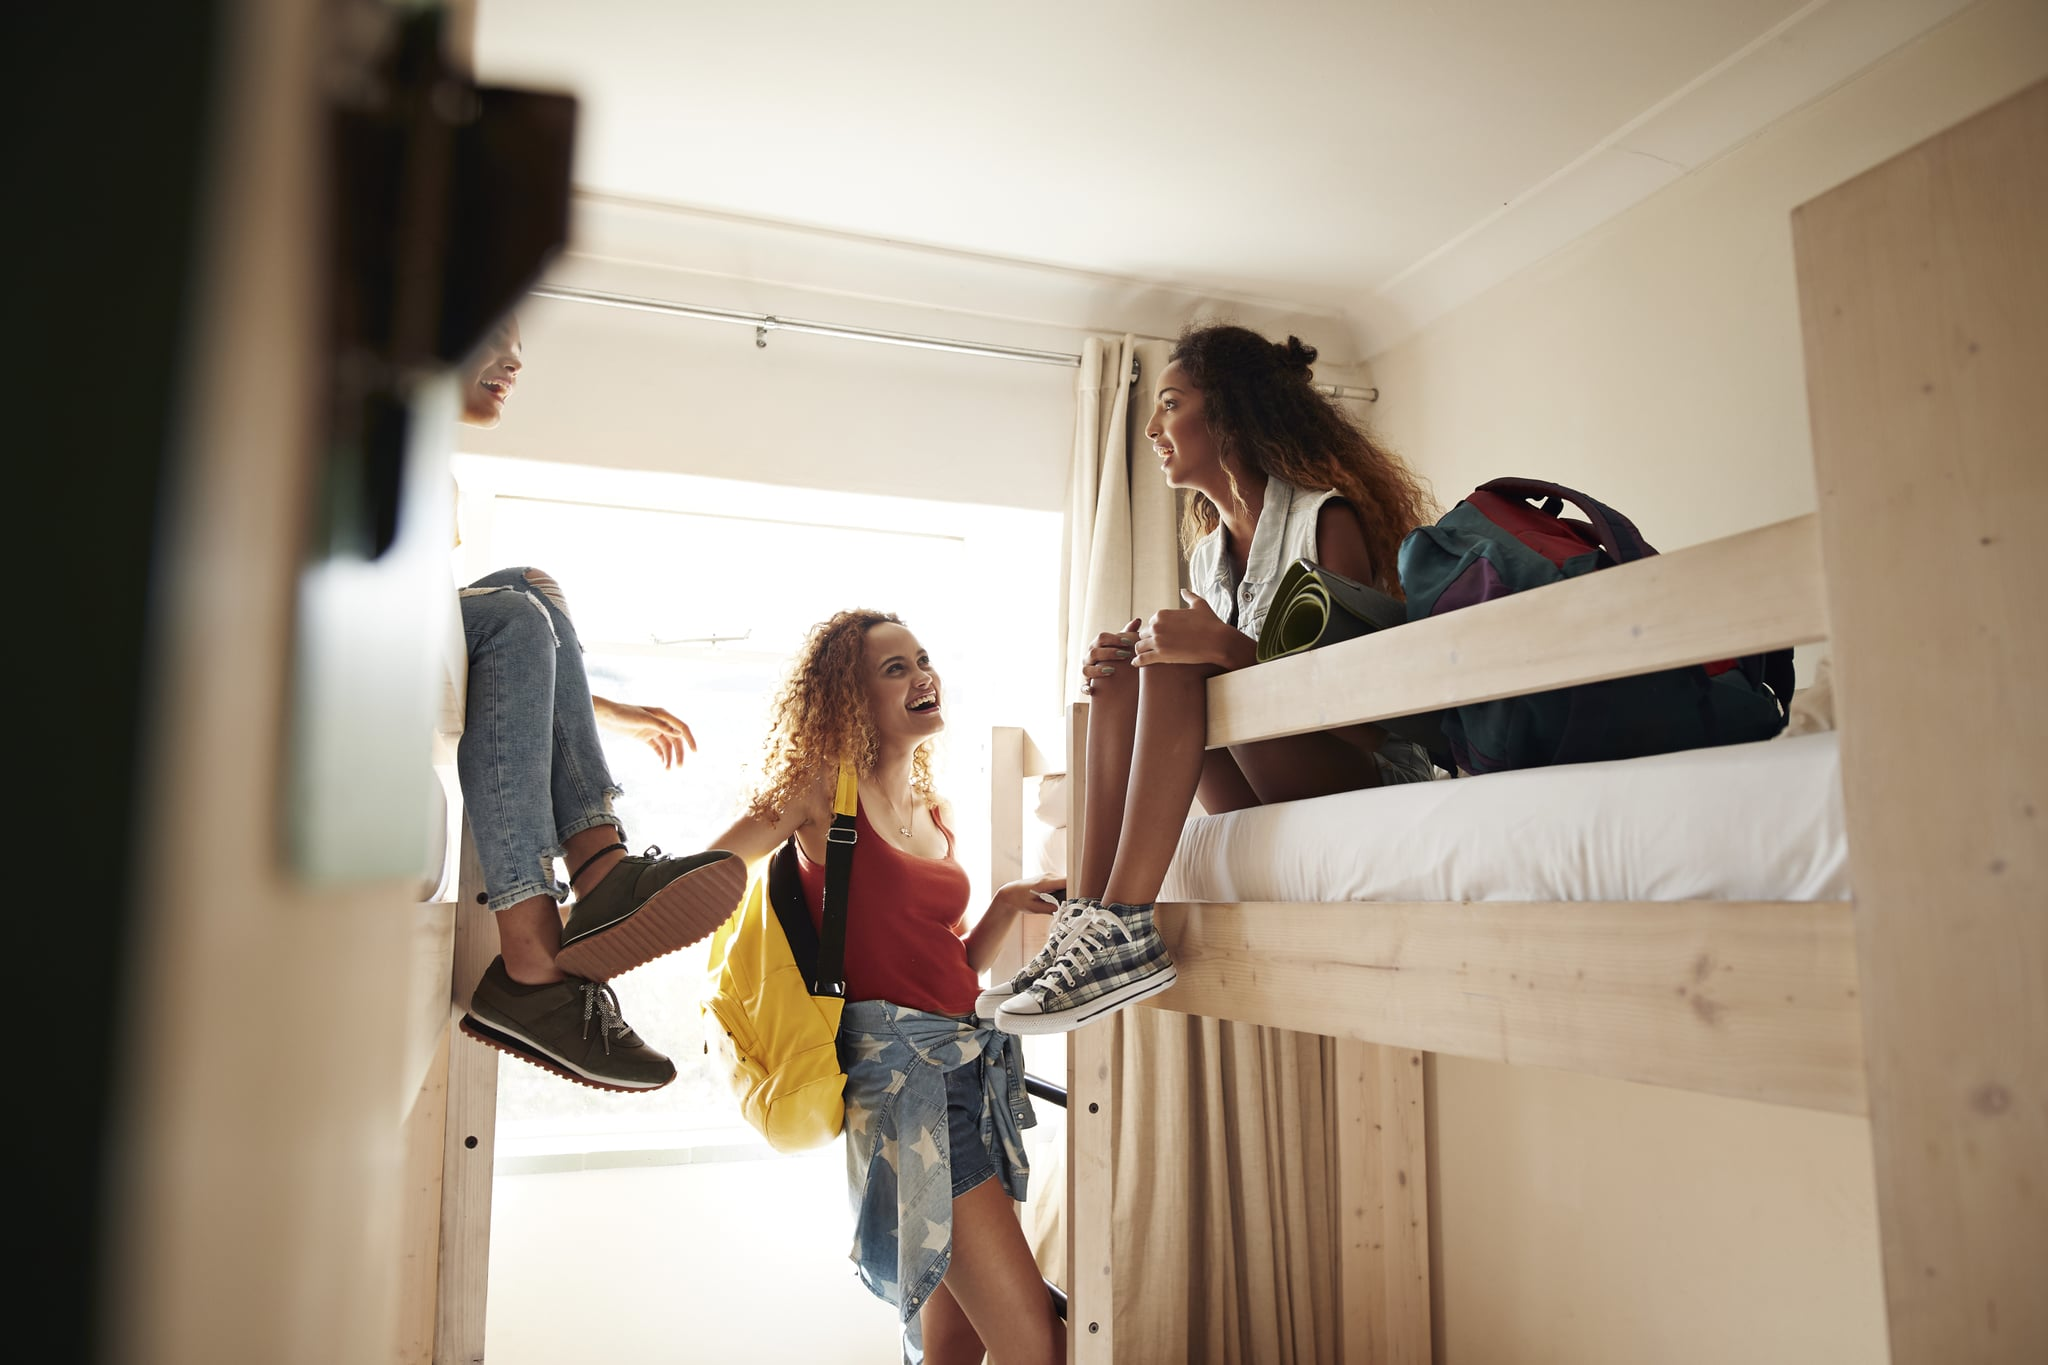 Young women having a good time and hanging out, at youth hostel with bunk beds